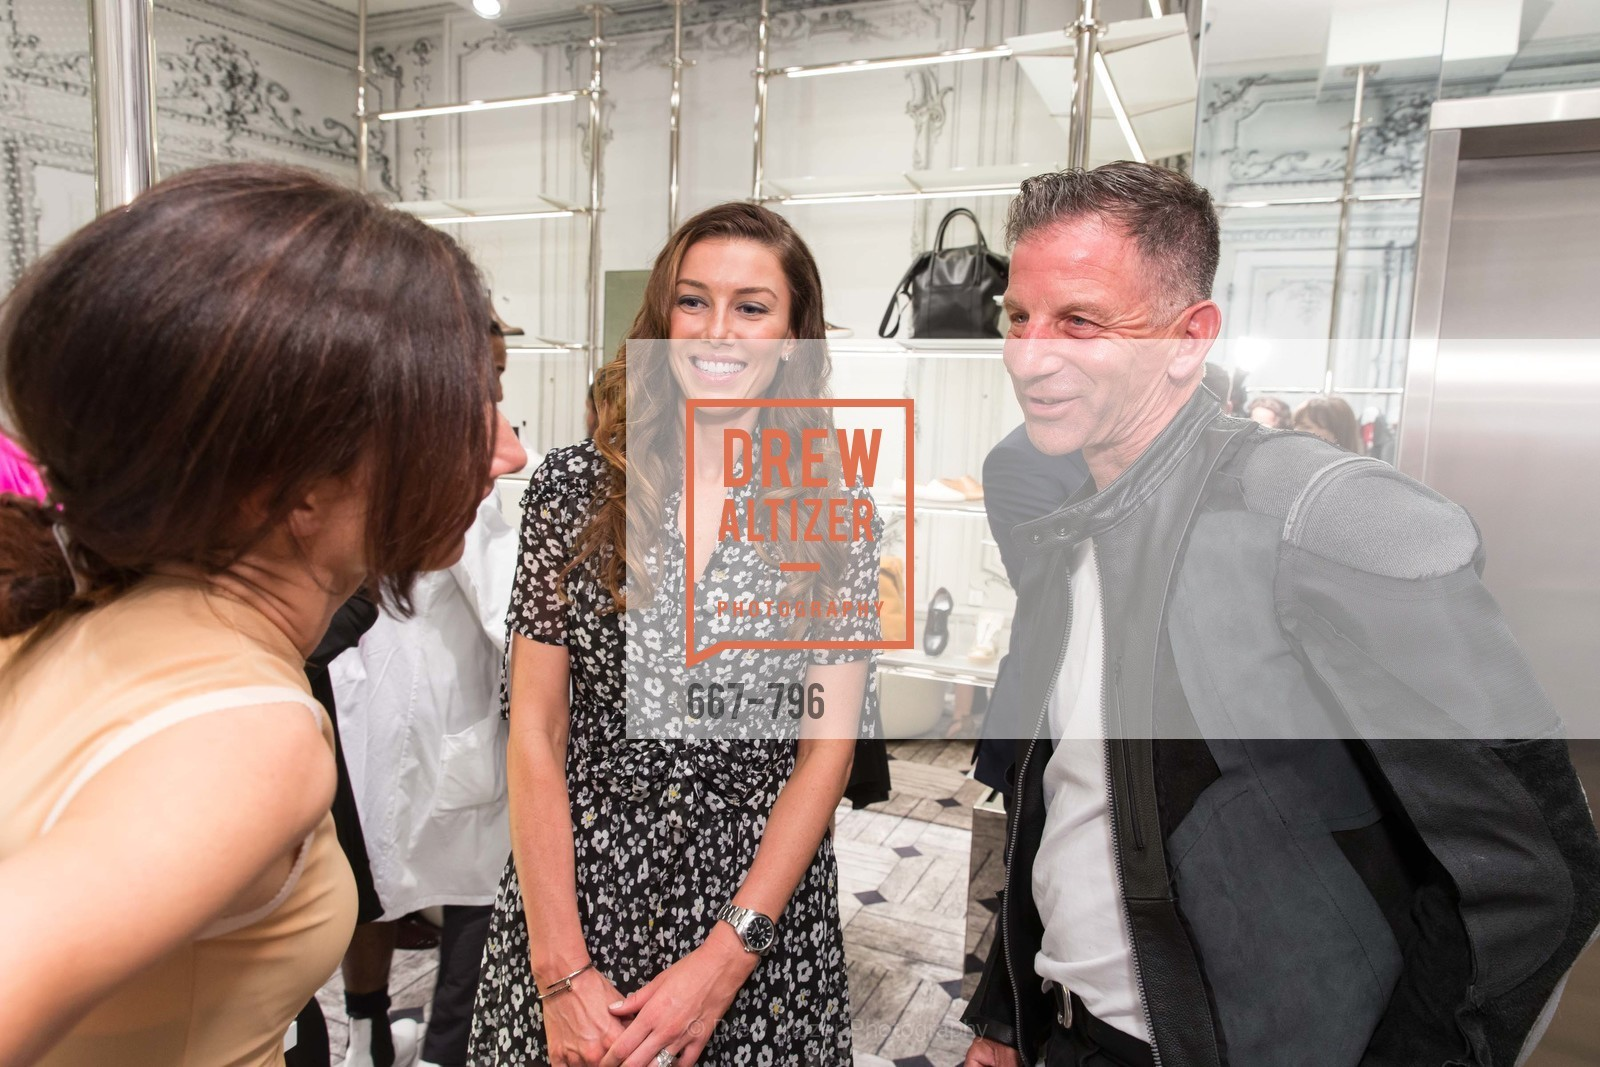 Sarah Somberg, Brad Somberg, MAISON MARGIELA San Francisco Boutique Grand Opening Event, US, April 24th, 2015,Drew Altizer, Drew Altizer Photography, full-service agency, private events, San Francisco photographer, photographer california